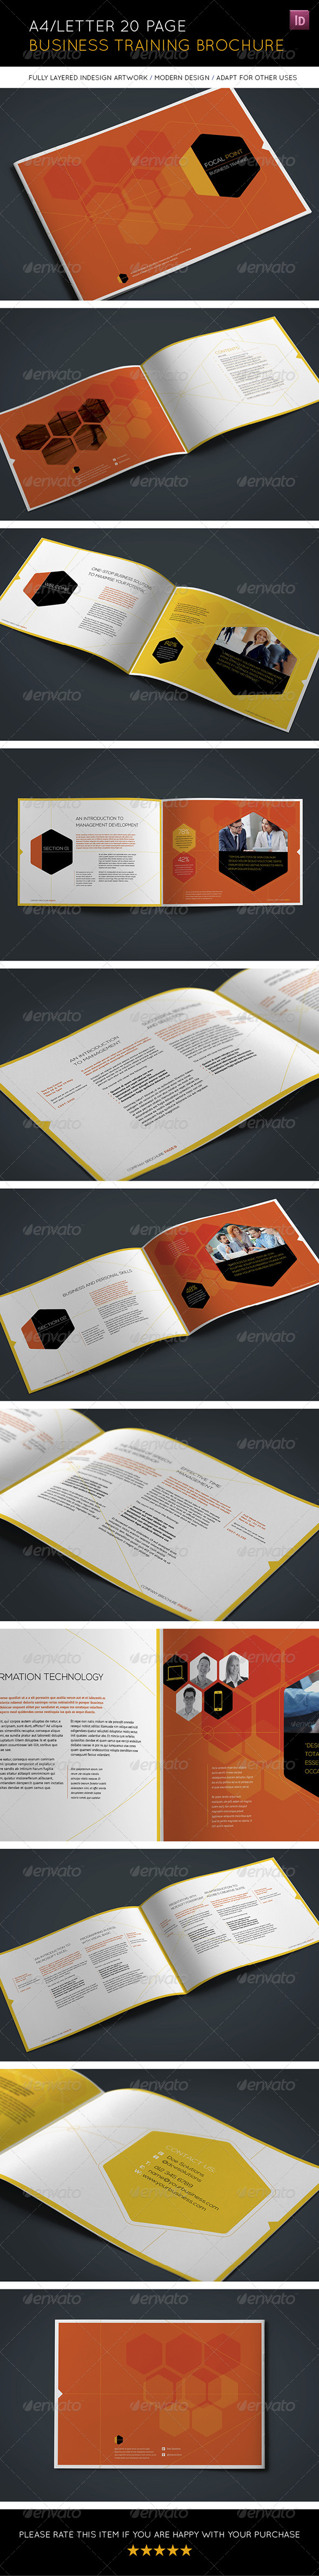 GraphicRiver 20 Page Landscape Business Training Brochure 8084960